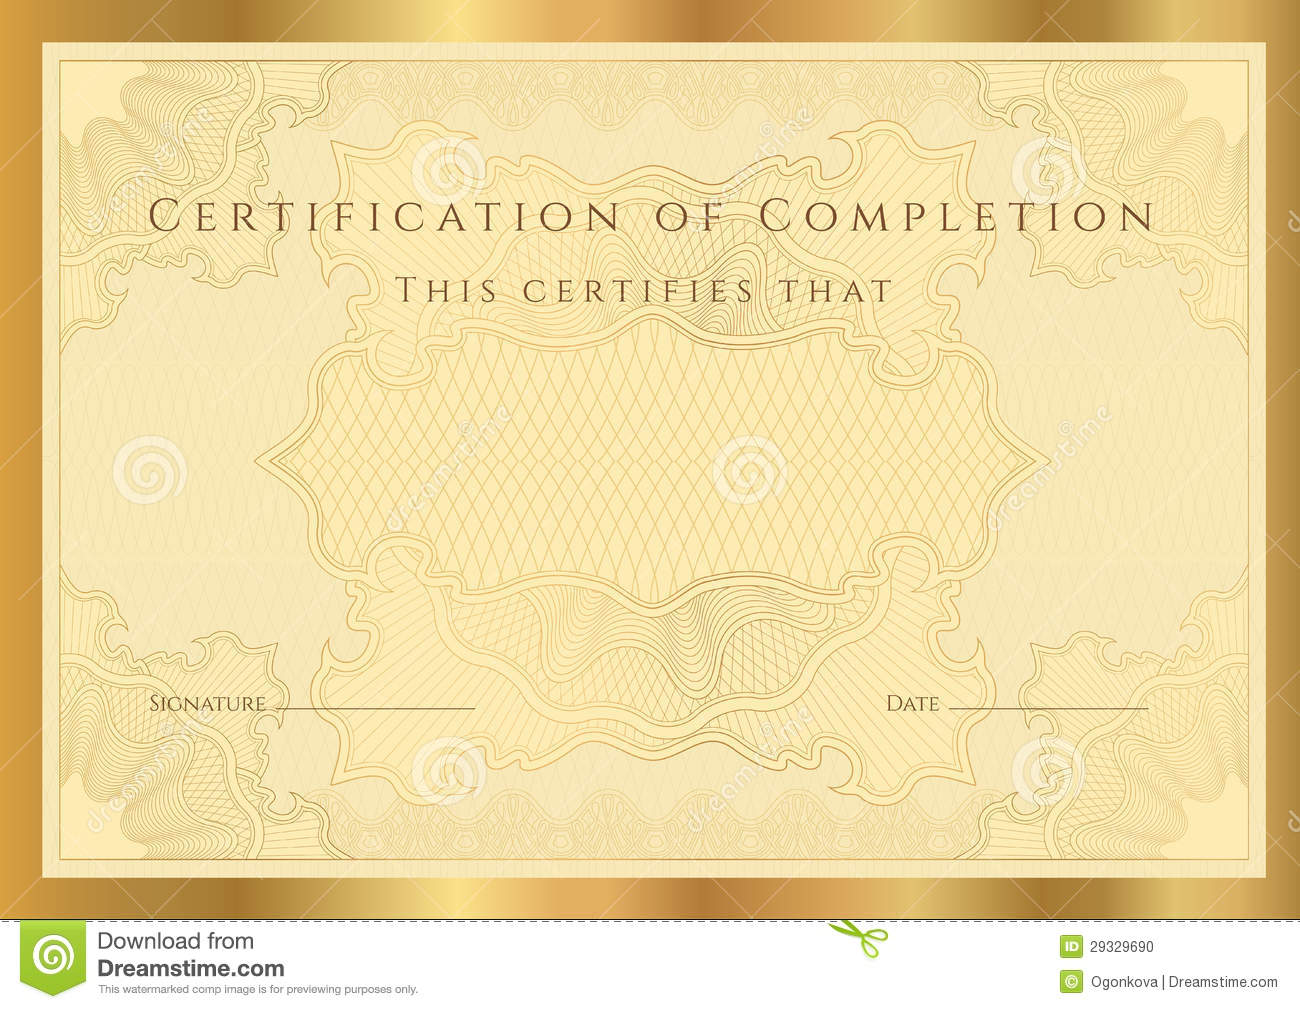 Editable training completion certificate template editable training completion certificate template yadclub Choice Image